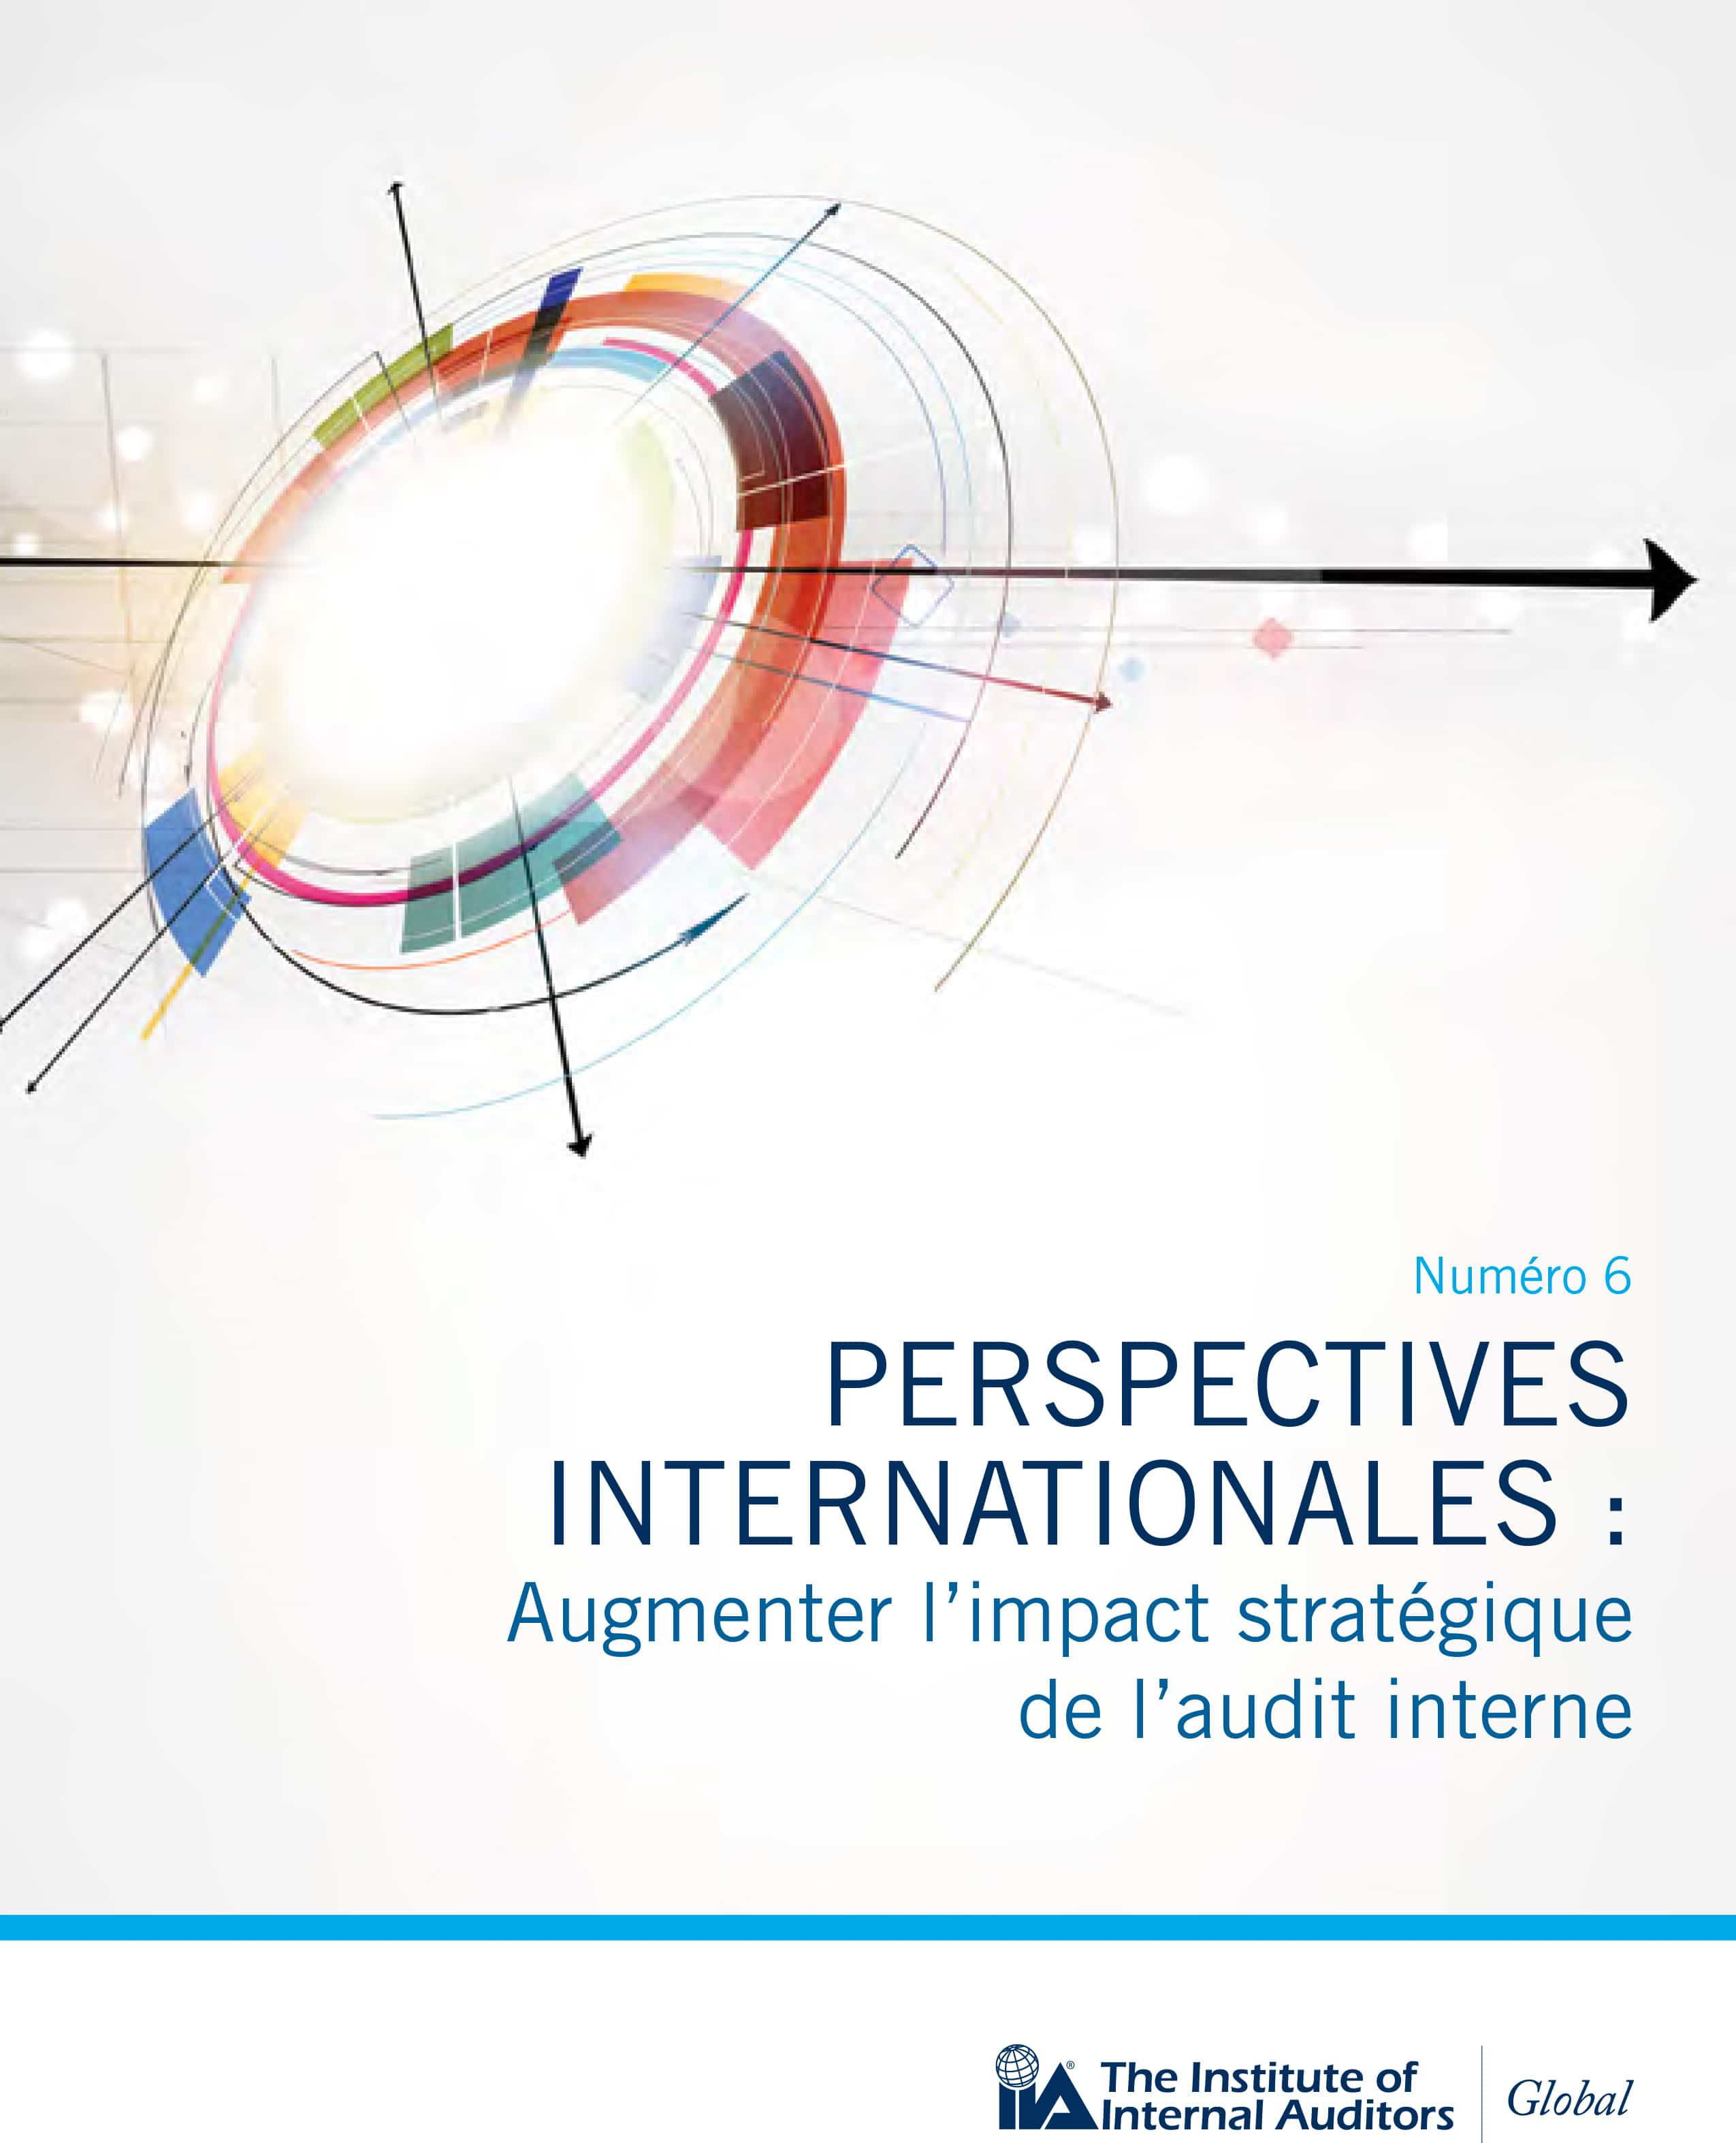 Perspectives internationales : Augmenter l'impact stratégique de l'audit interne